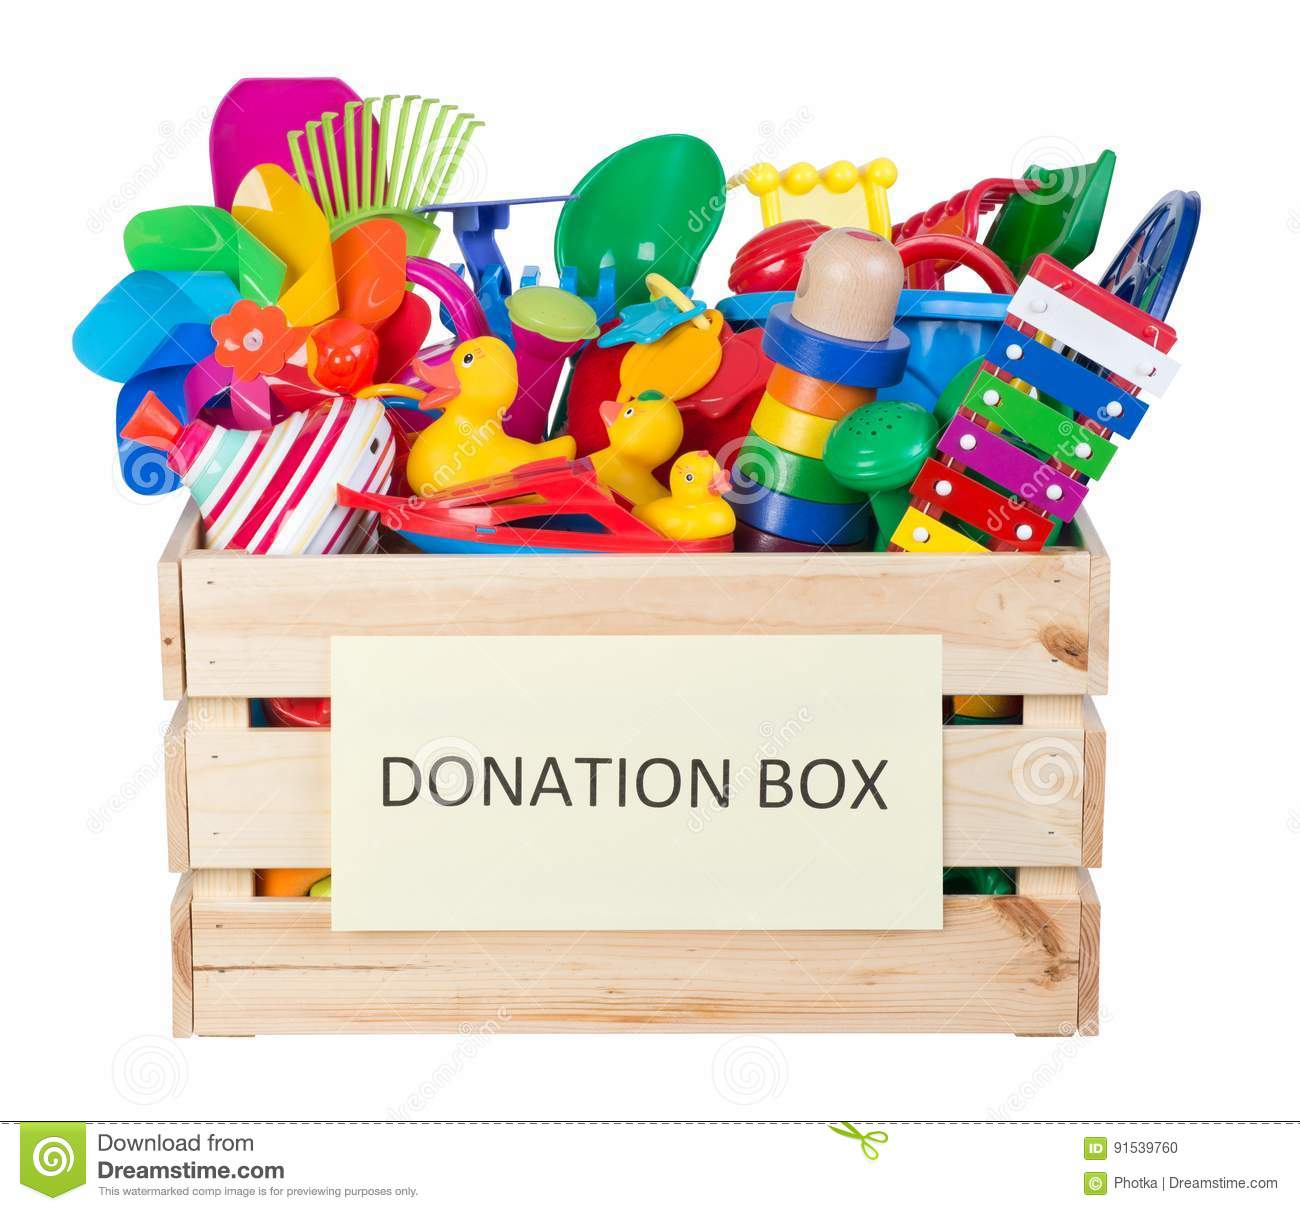 Toys donations box isolated on white background